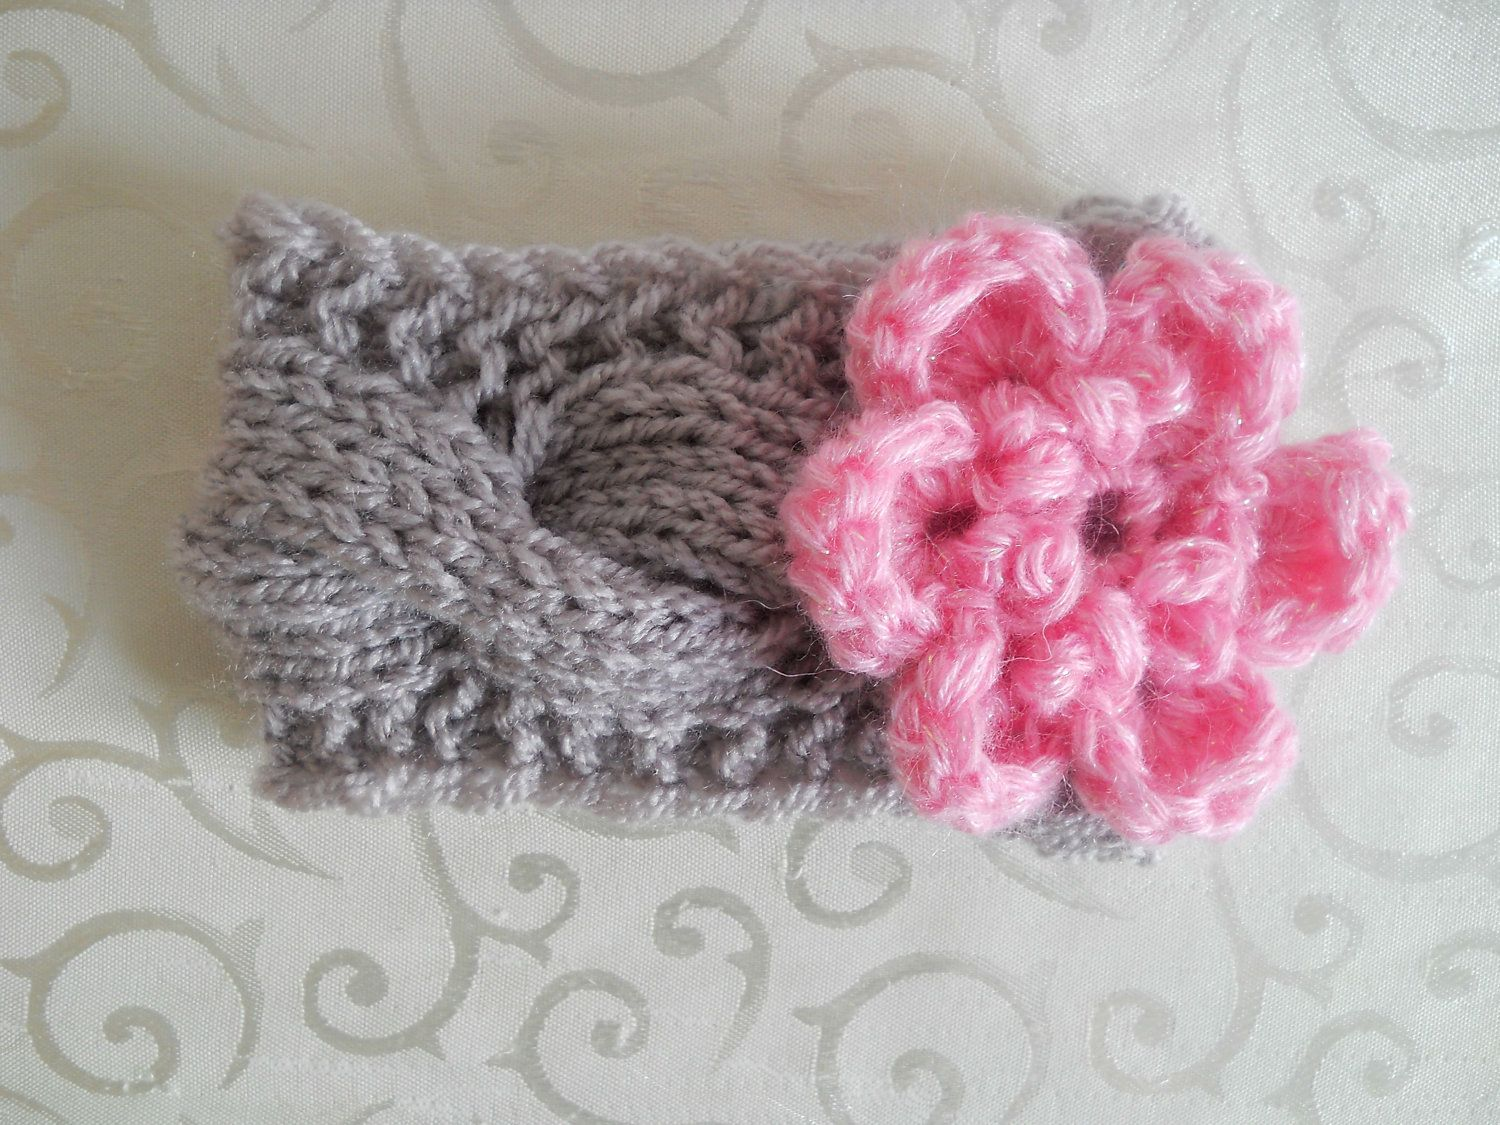 Knitting Pattern Baby Headband Flower : Baby Crochet Headband Newborn Crochet Headband Baby Girl ...